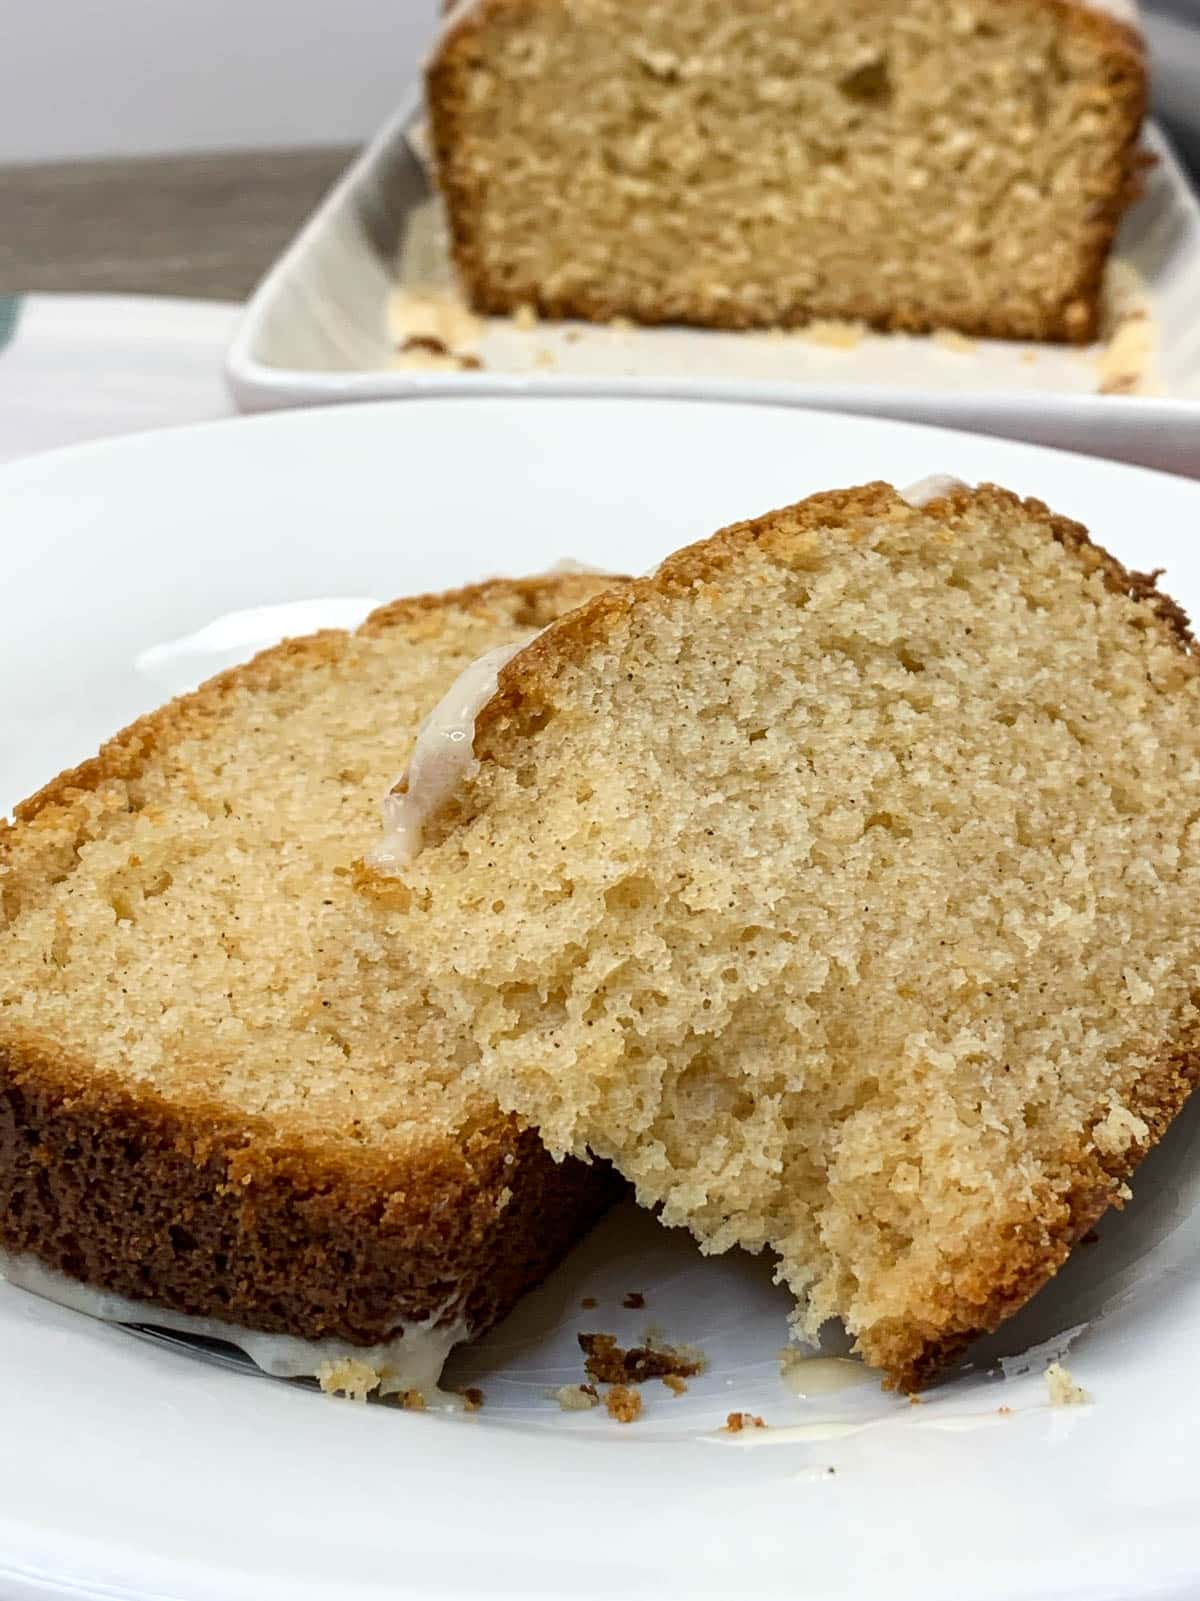 slices of eggnog bread on white plate